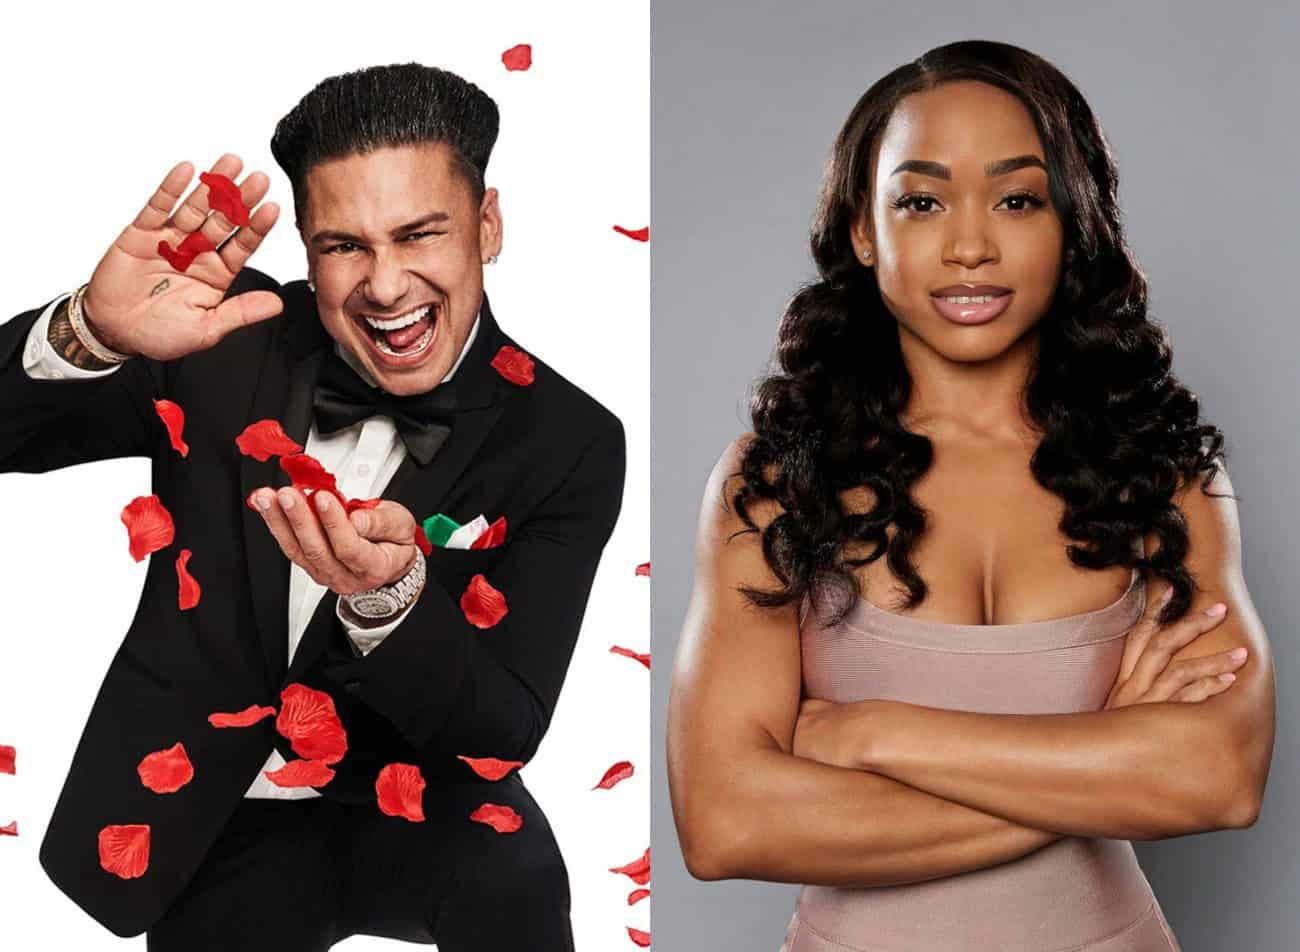 A Double Shot at Love's Nikki Leaks Pauly's Text Messages of Him Professing His Love to Her!